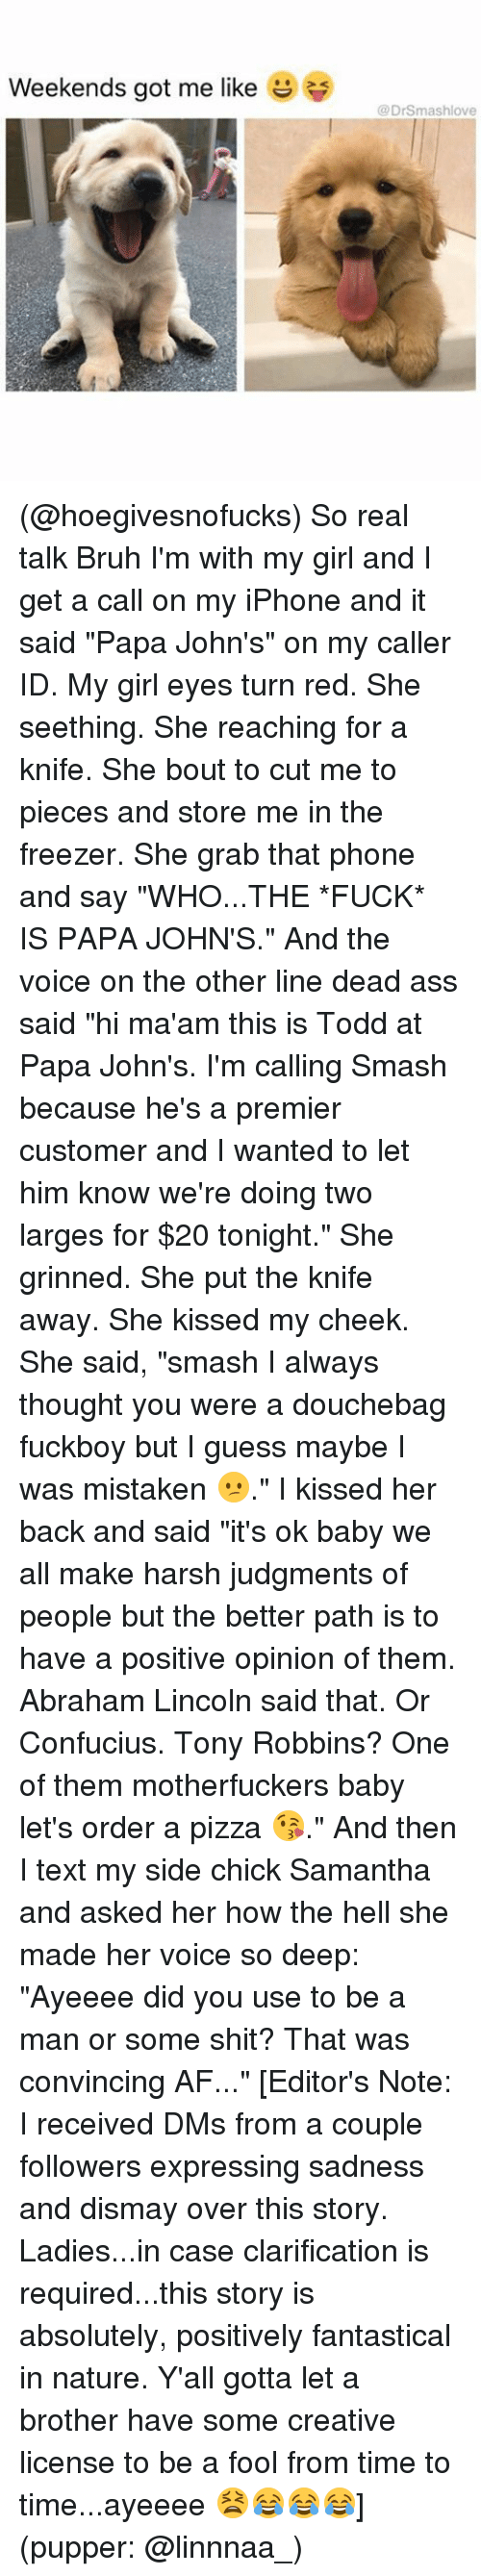 "Ayeeee: Weekends got me like  Drsmashlove (@hoegivesnofucks) So real talk Bruh I'm with my girl and I get a call on my iPhone and it said ""Papa John's"" on my caller ID. My girl eyes turn red. She seething. She reaching for a knife. She bout to cut me to pieces and store me in the freezer. She grab that phone and say ""WHO...THE *FUCK* IS PAPA JOHN'S."" And the voice on the other line dead ass said ""hi ma'am this is Todd at Papa John's. I'm calling Smash because he's a premier customer and I wanted to let him know we're doing two larges for $20 tonight."" She grinned. She put the knife away. She kissed my cheek. She said, ""smash I always thought you were a douchebag fuckboy but I guess maybe I was mistaken 😕."" I kissed her back and said ""it's ok baby we all make harsh judgments of people but the better path is to have a positive opinion of them. Abraham Lincoln said that. Or Confucius. Tony Robbins? One of them motherfuckers baby let's order a pizza 😘."" And then I text my side chick Samantha and asked her how the hell she made her voice so deep: ""Ayeeee did you use to be a man or some shit? That was convincing AF..."" [Editor's Note: I received DMs from a couple followers expressing sadness and dismay over this story. Ladies...in case clarification is required...this story is absolutely, positively fantastical in nature. Y'all gotta let a brother have some creative license to be a fool from time to time...ayeeee 😫😂😂😂] (pupper: @linnnaa_)"